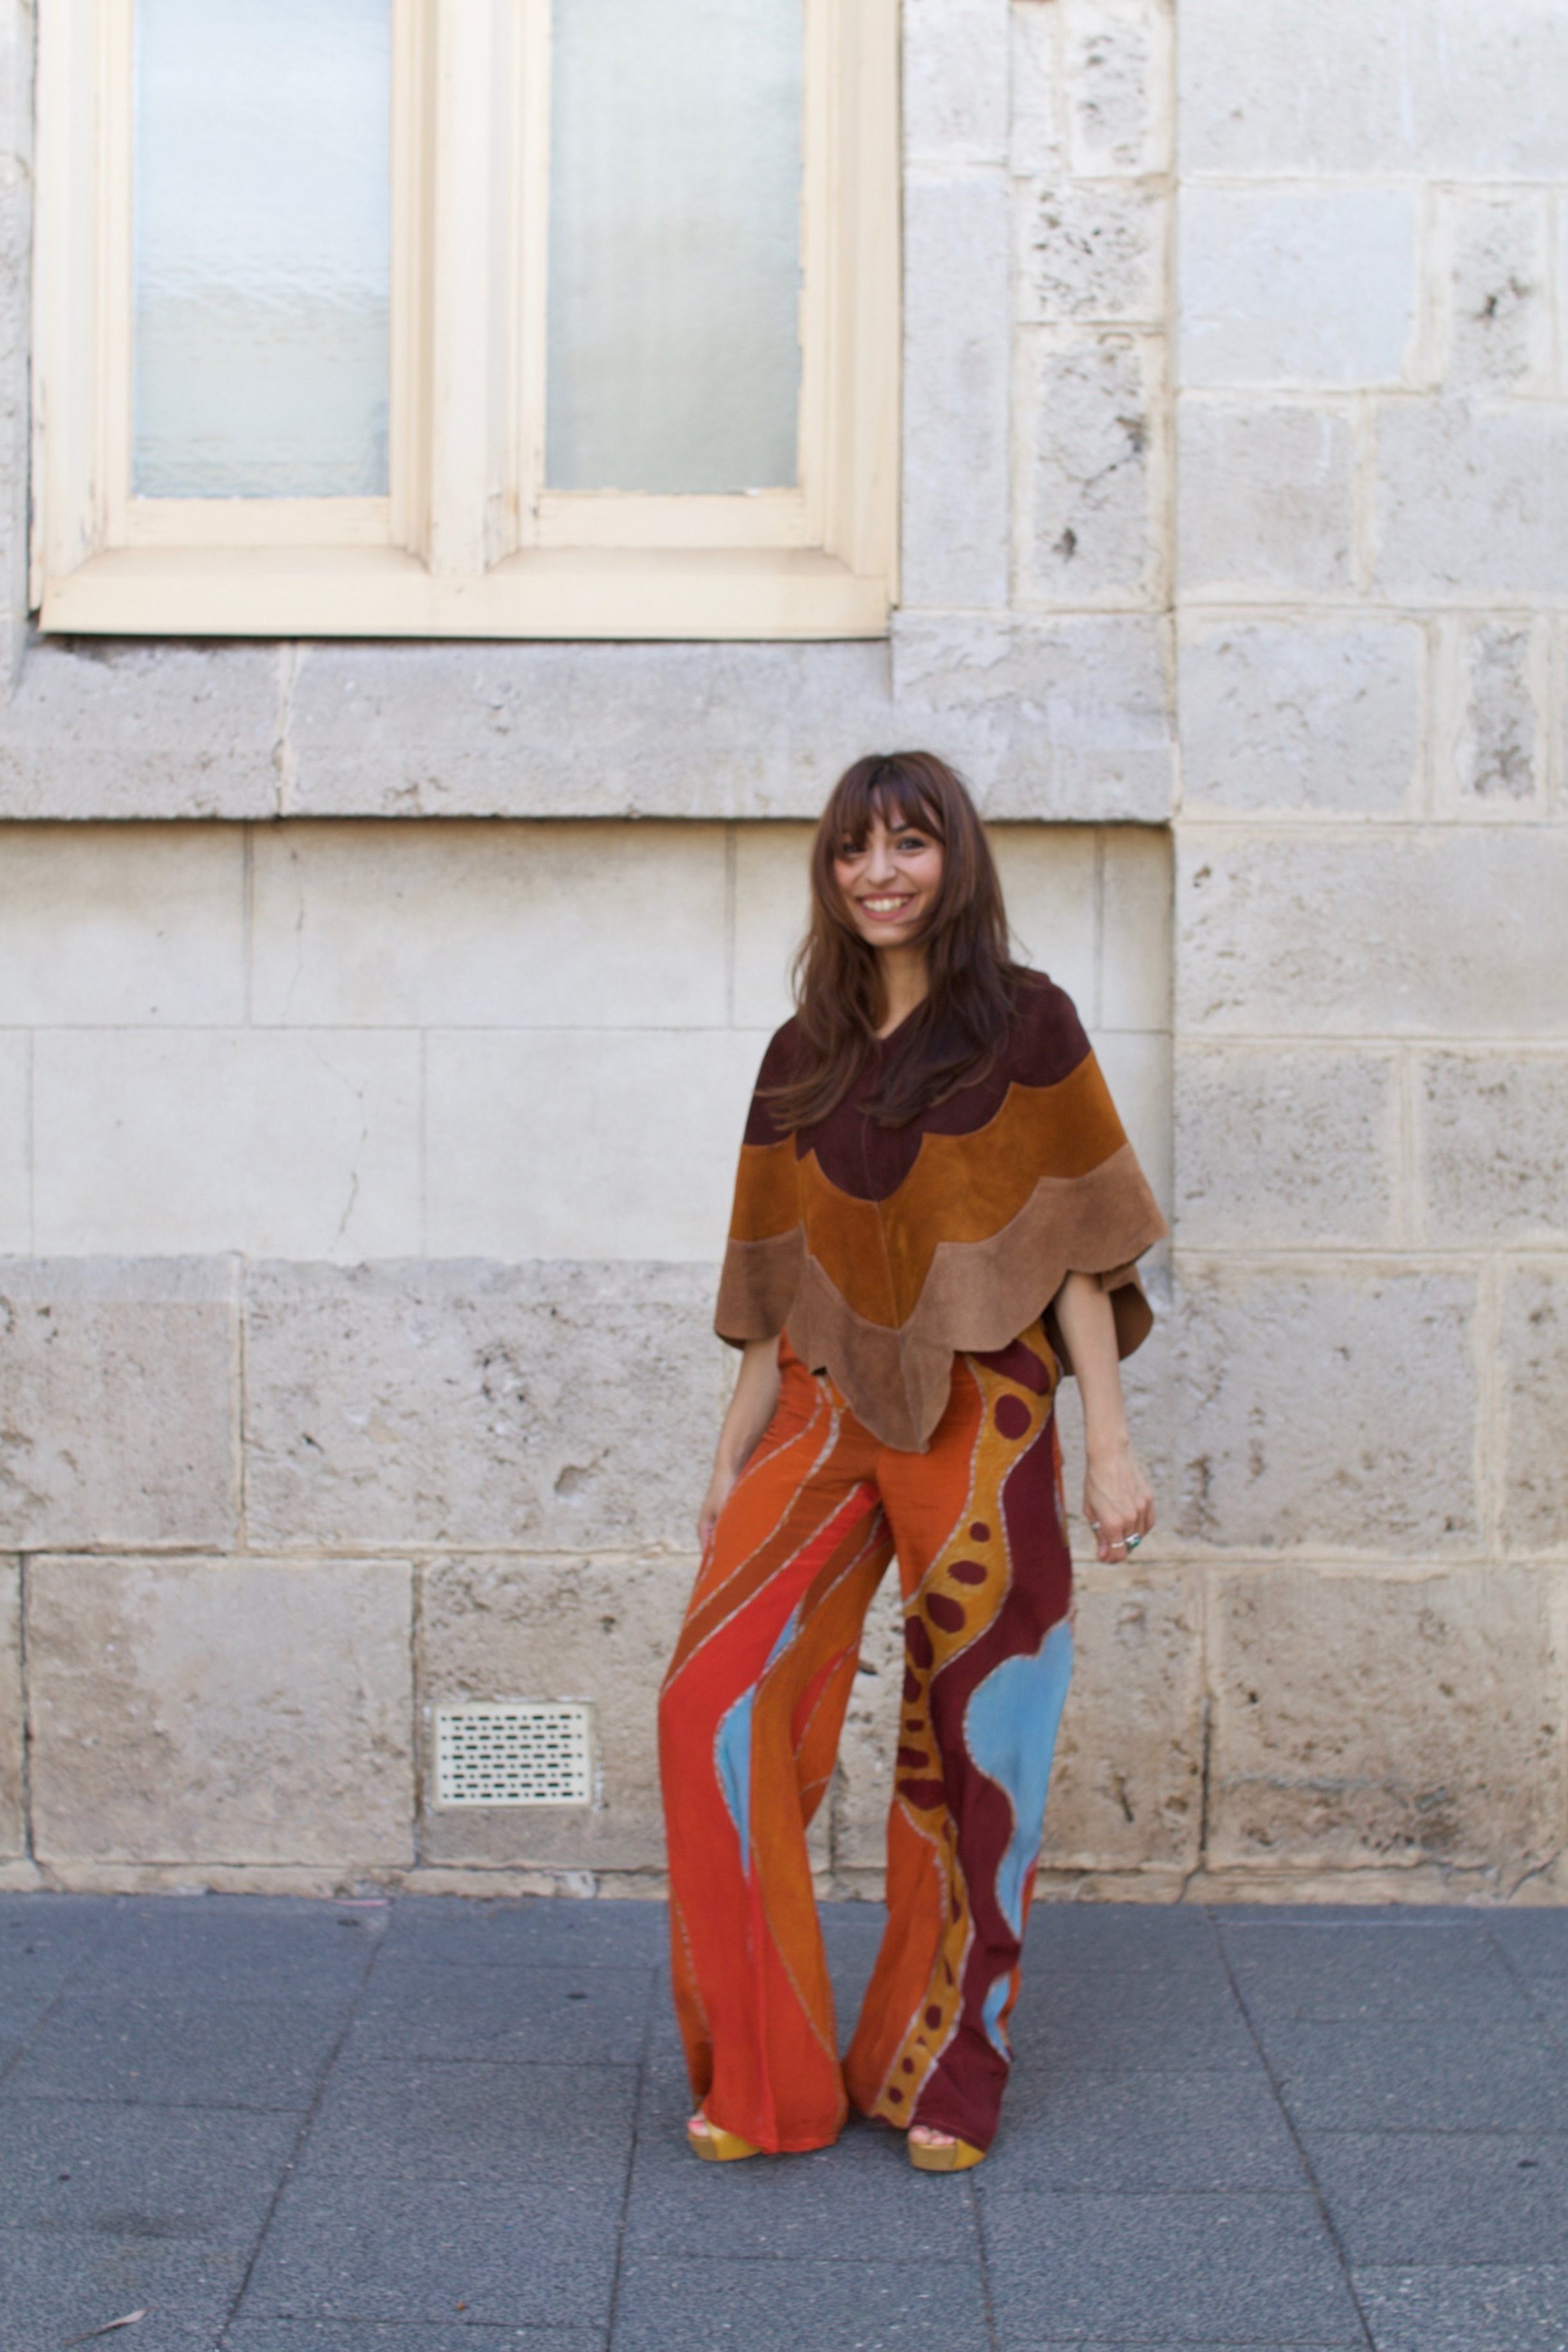 meet the author of this article - This article was written by Natalie Shehata the founder, editor + eco-stylist of tommie magazine. You can learn more about her here.Thank you for reading and supporting independent media!